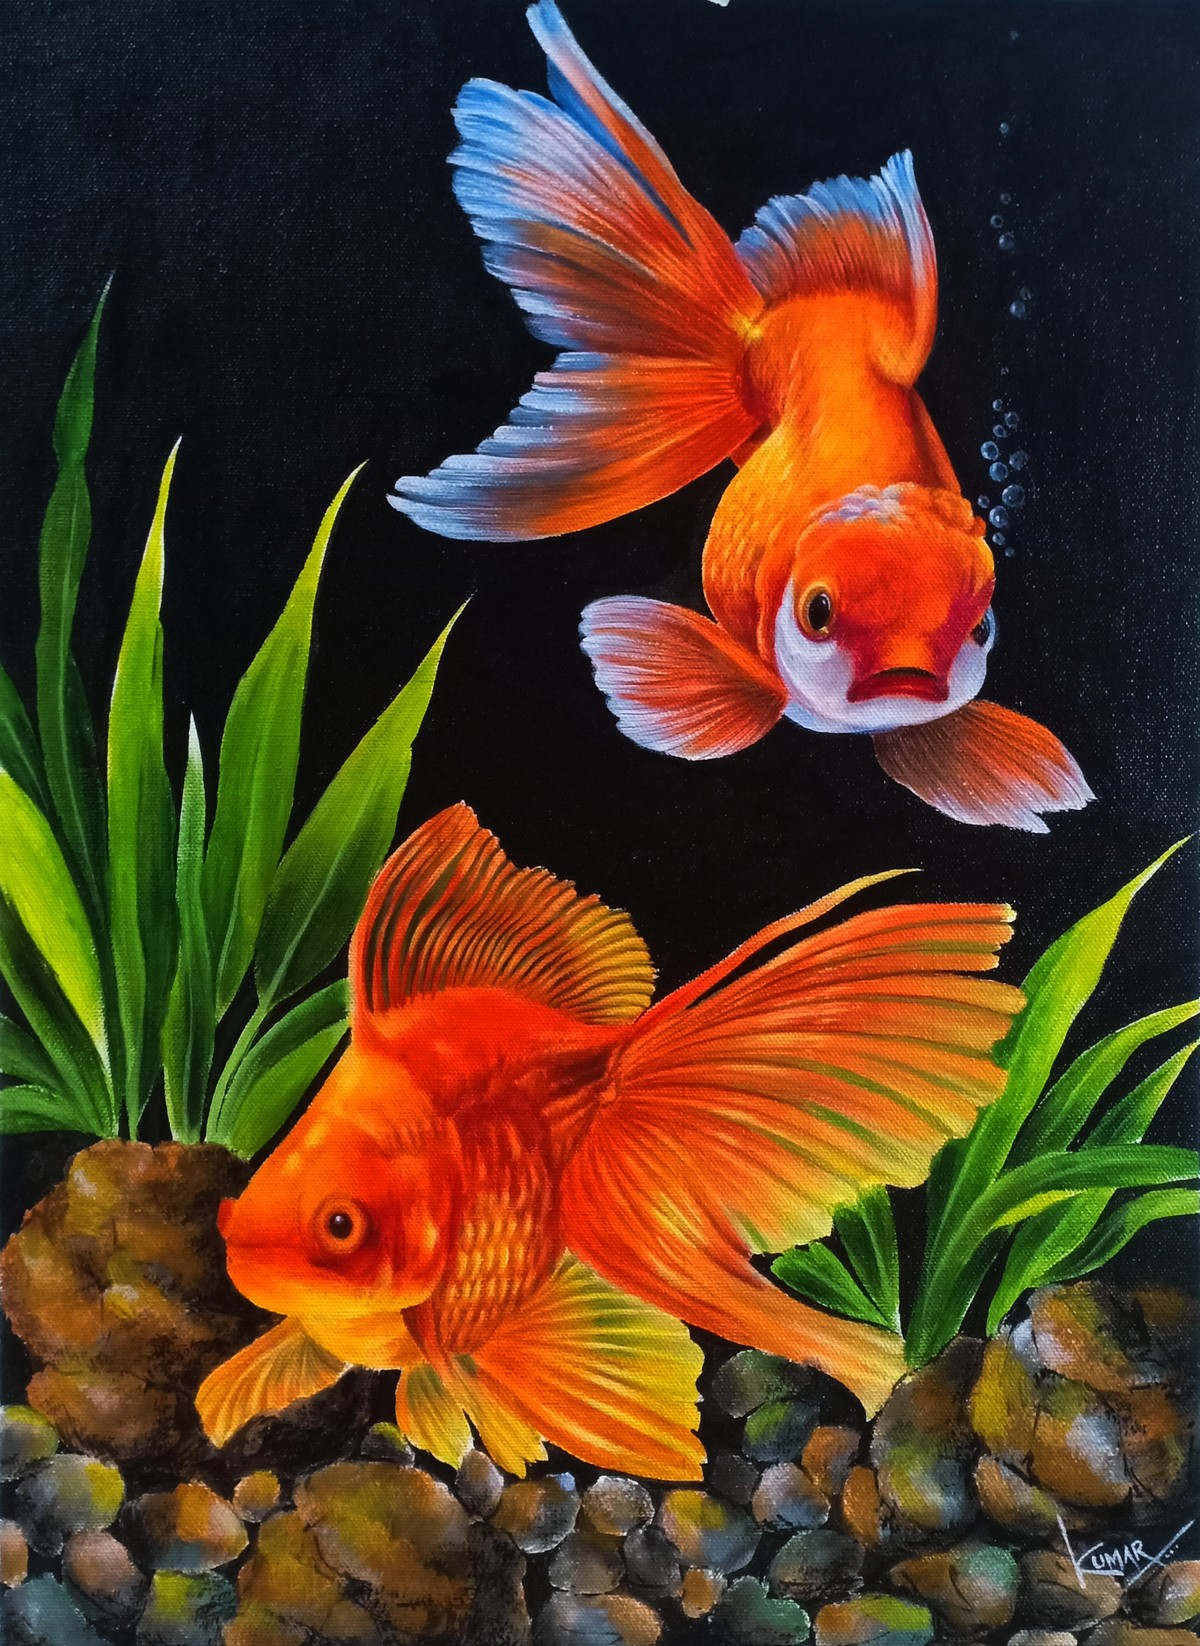 Gold fish by Kumar Ranadive, Photorealism Painting, Acrylic on Canvas, Heavy Metal color